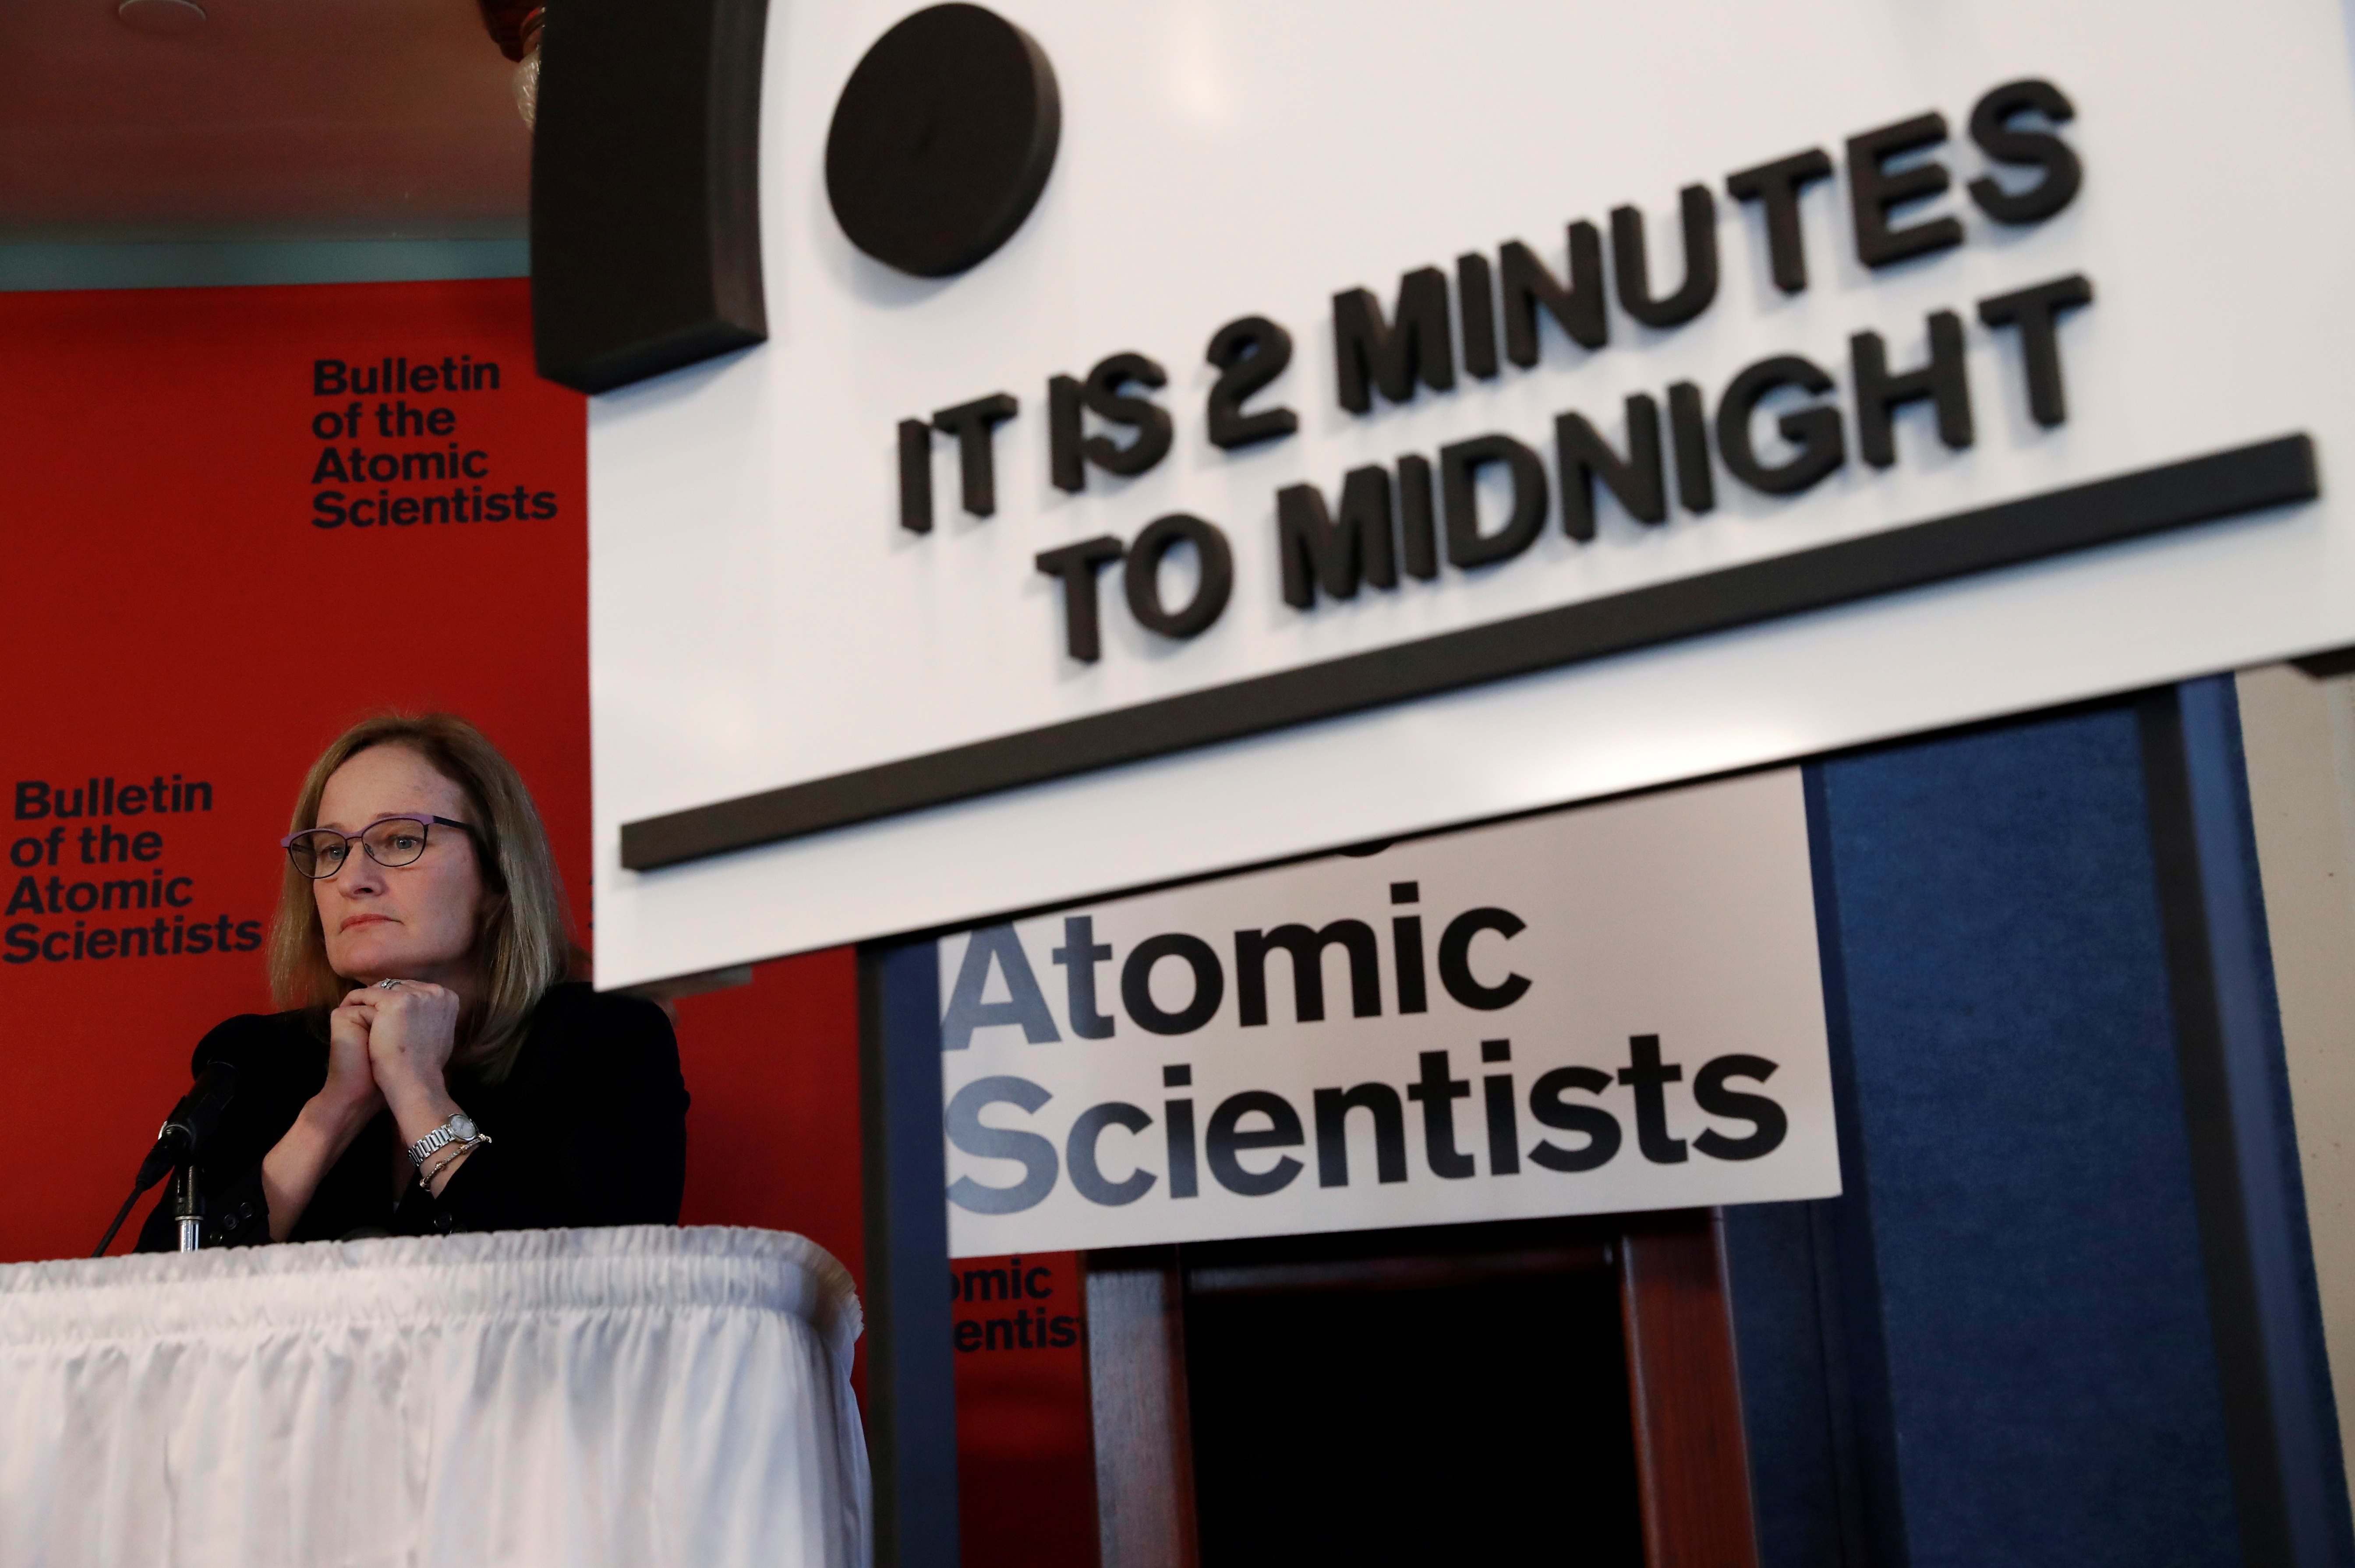 The Bulletin of the Atomic Scientists move the 'Doomsday Clock' hands to two minutes until midnight